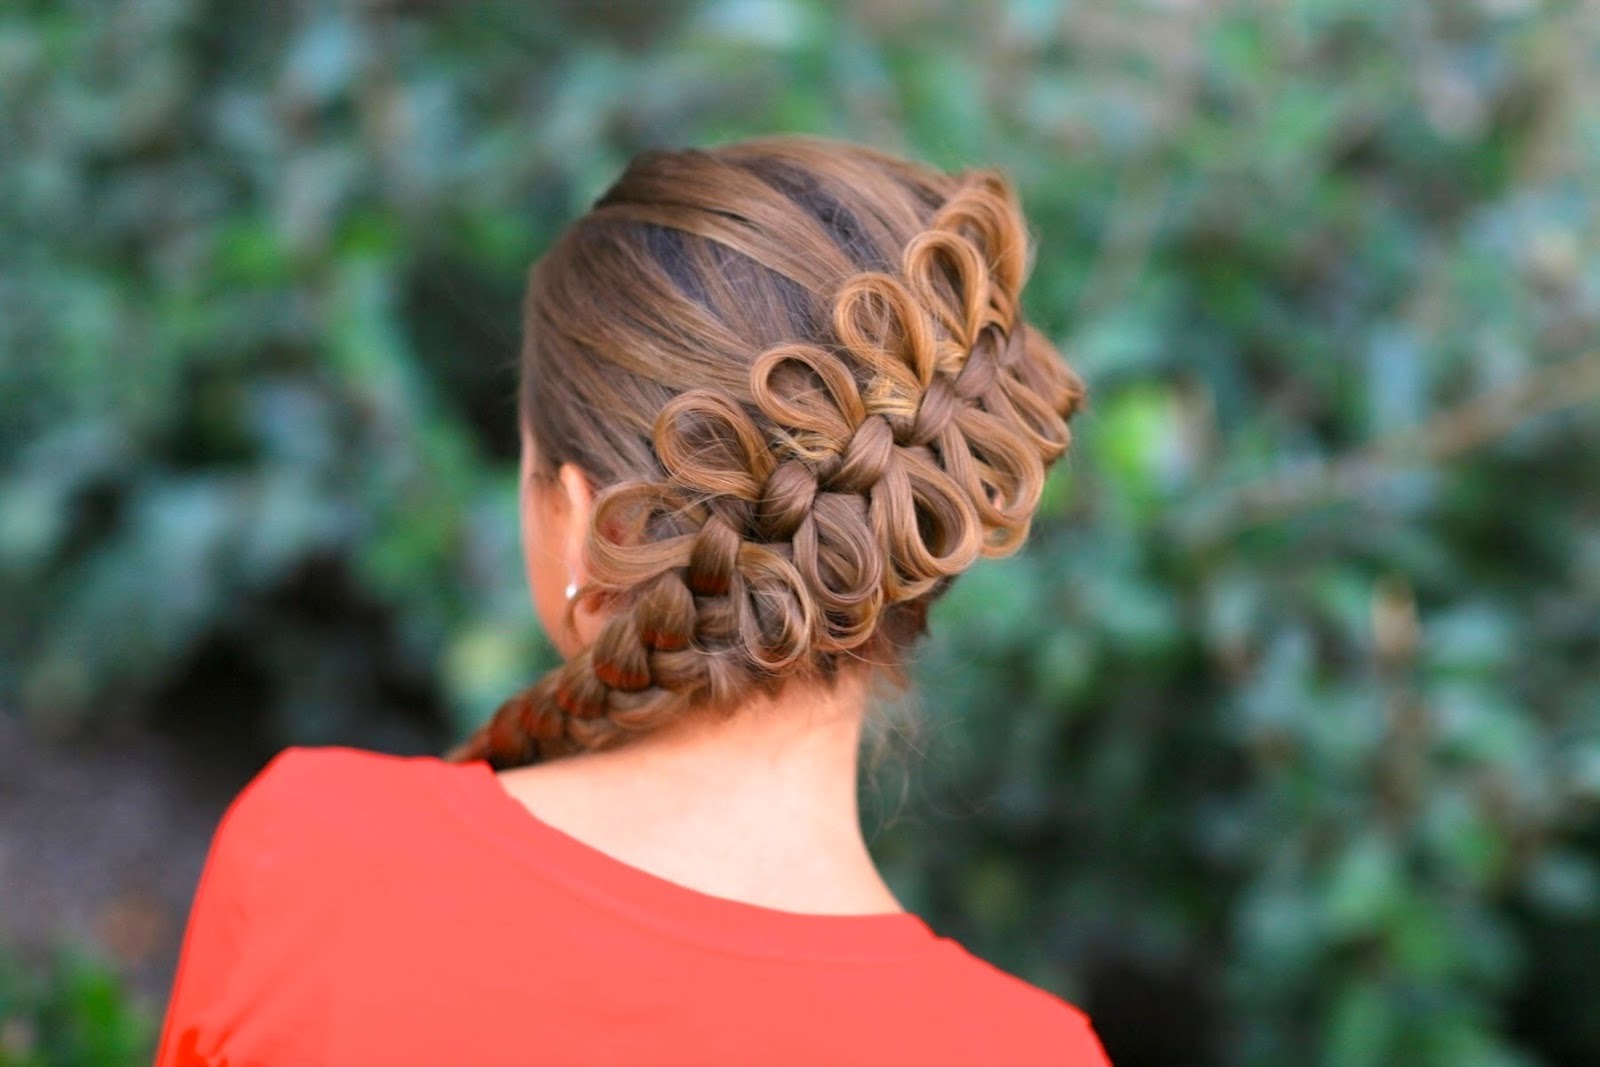 Cute Bow Hairstyle Designs And Ideas For Girls ~ Calgary